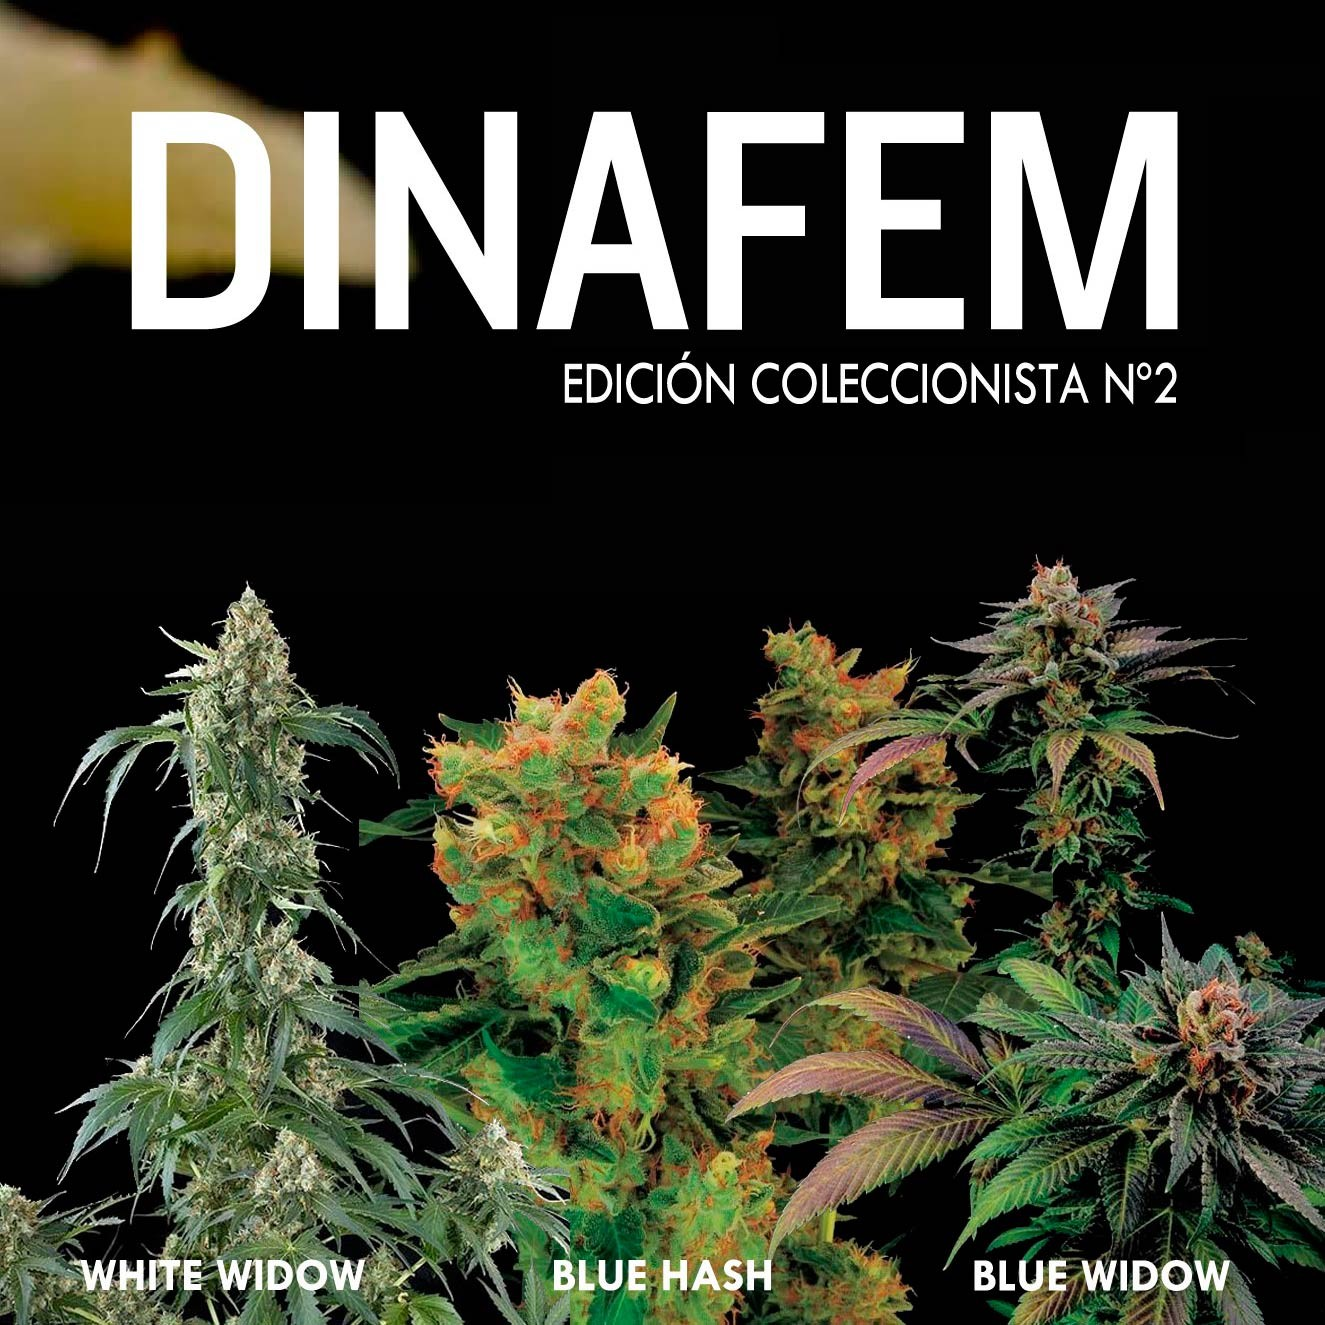 Dinafem collector #2 6 seeds - Collections - DINAFEM SEEDS